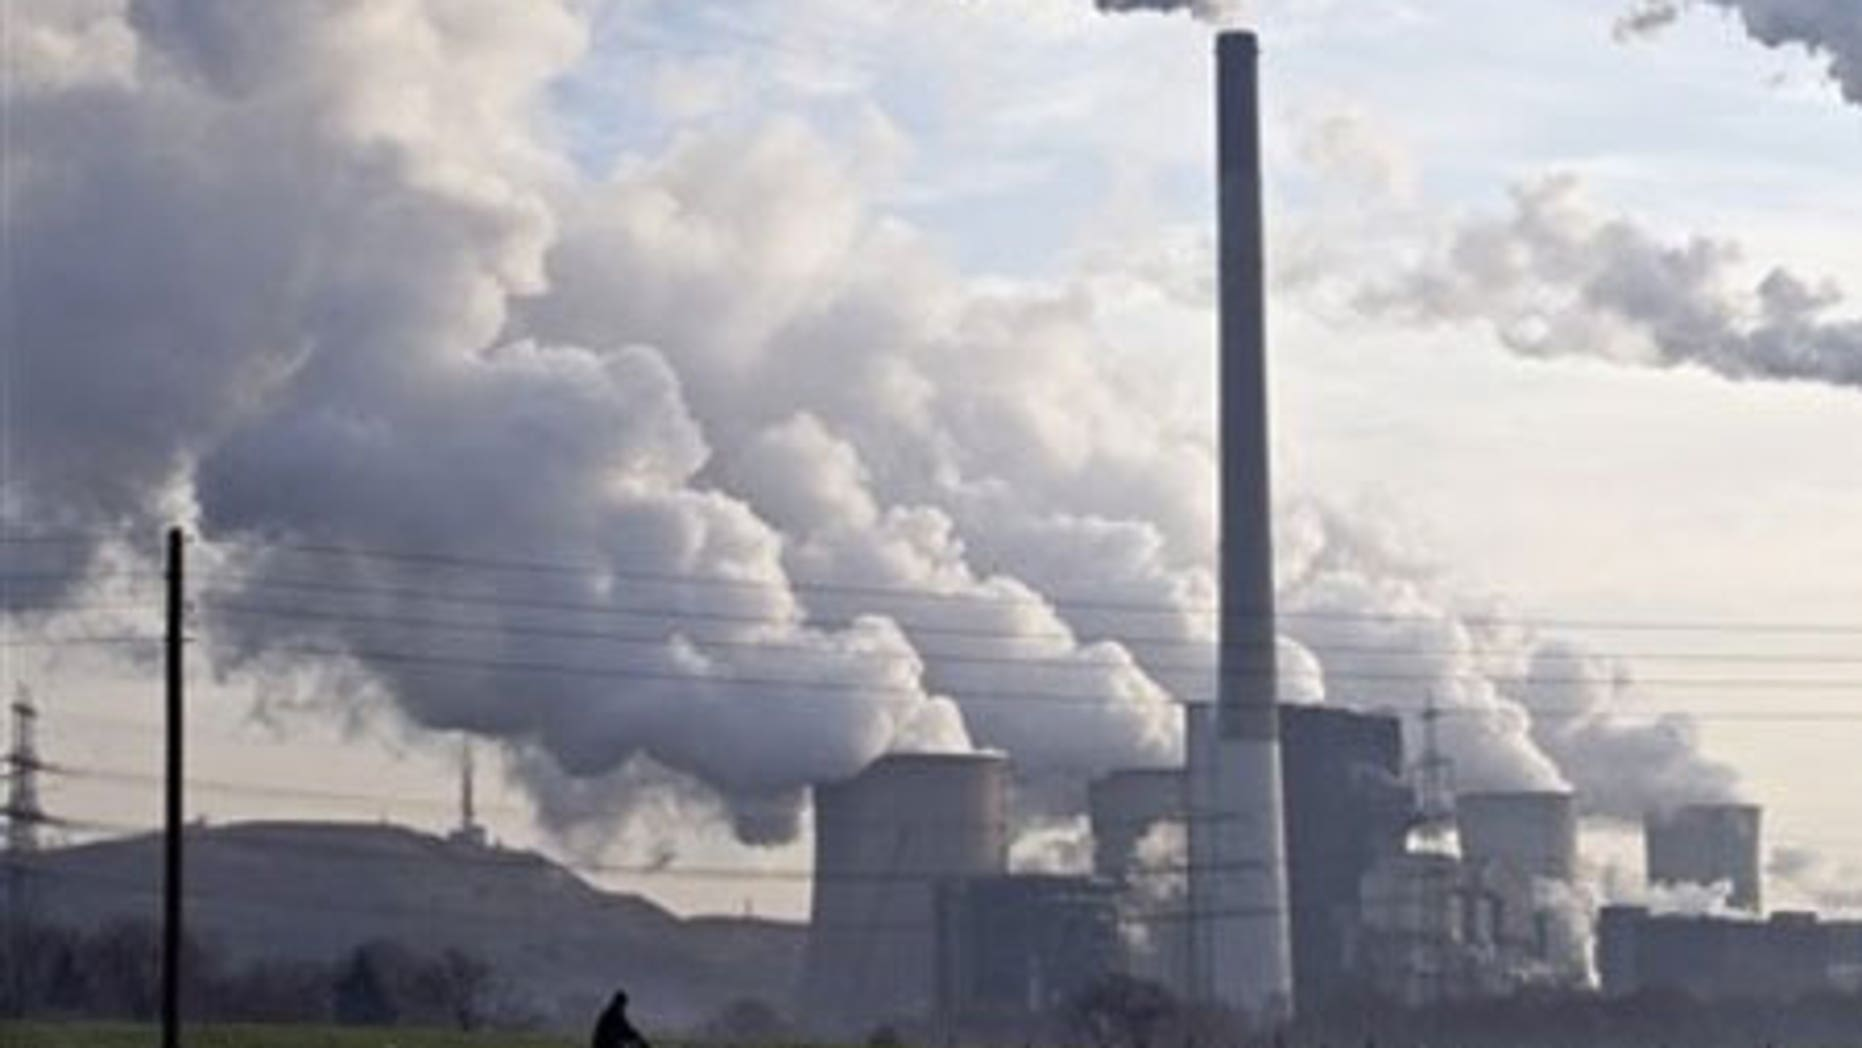 Dec. 16: Steam and smoke is seen over the coal burning power plant in Gelsenkirchen, Germany. Coal power plants are among the biggest producer of CO2.